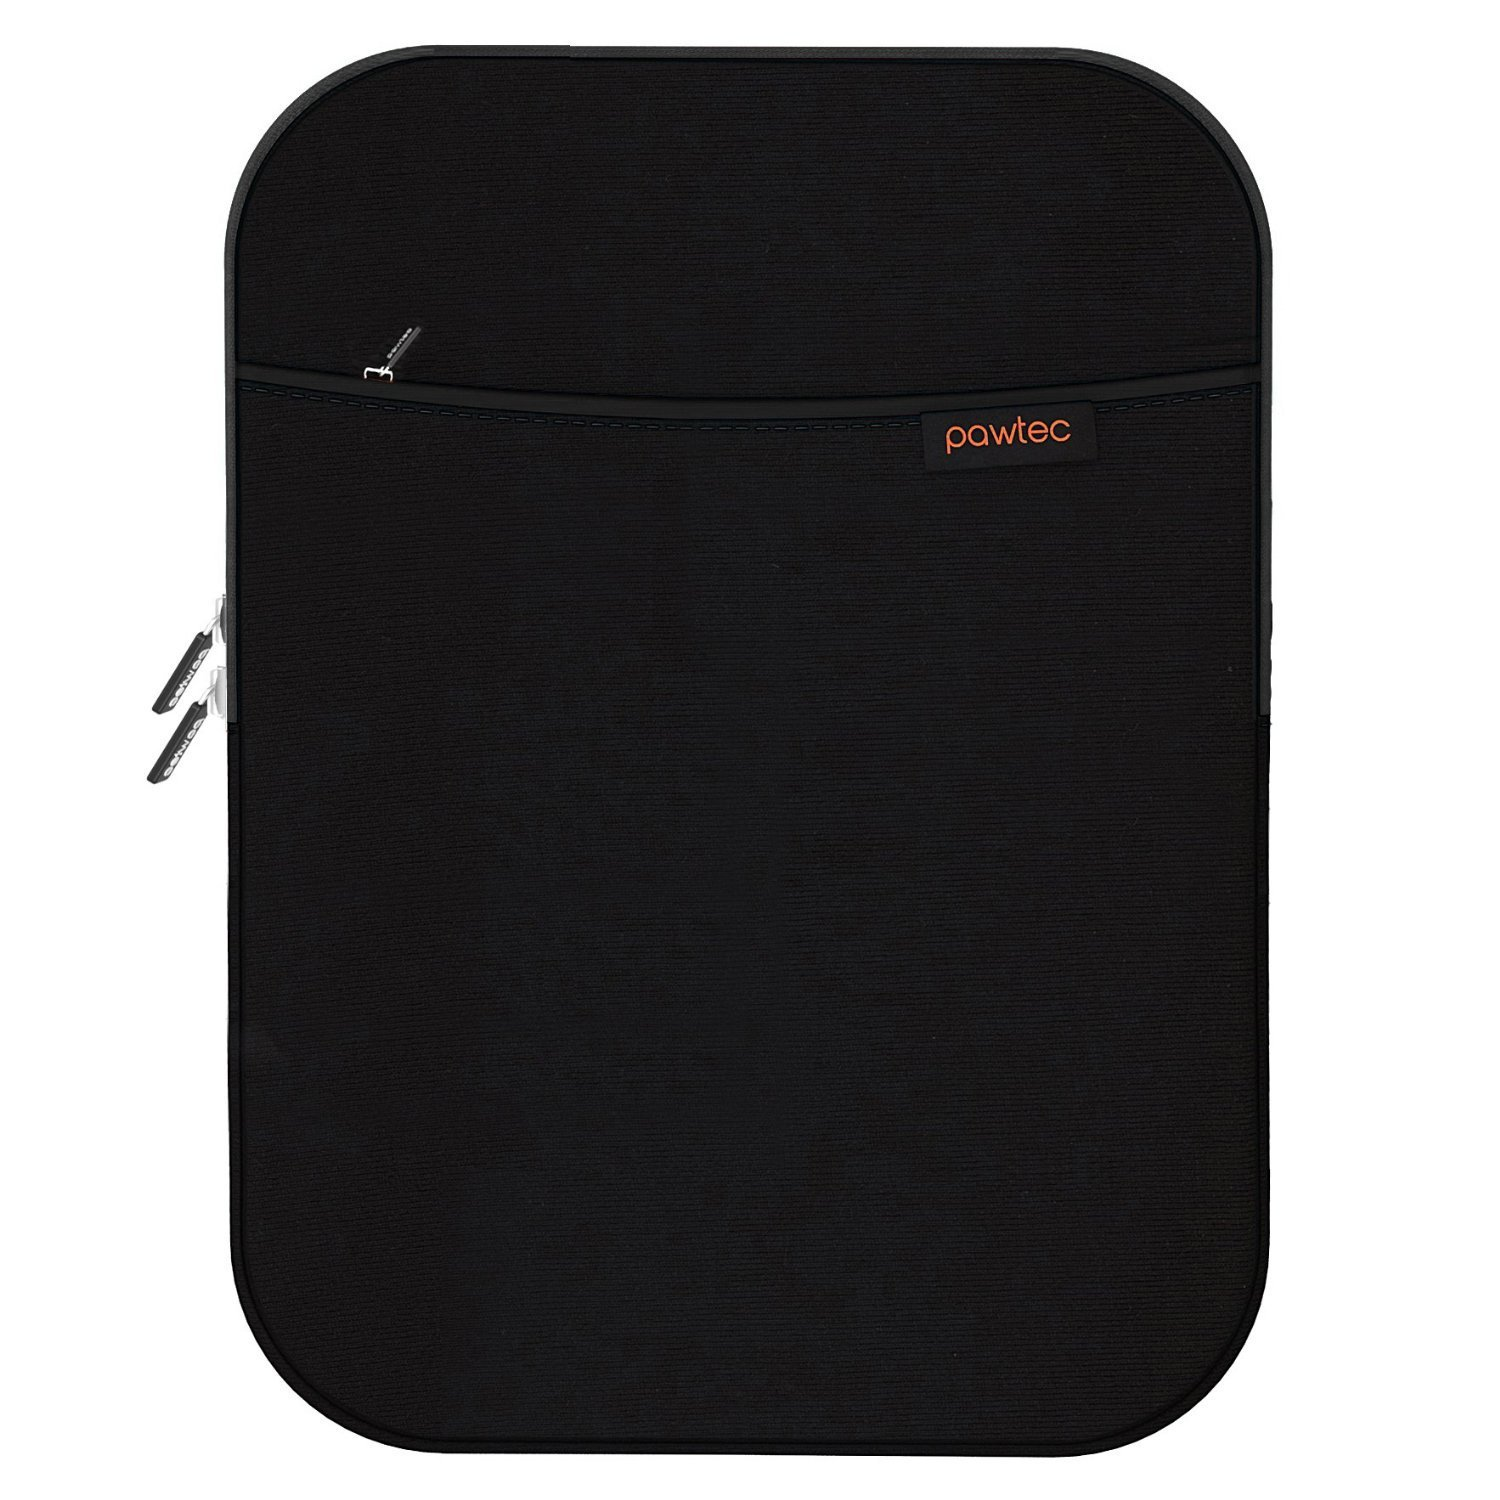 """Pawtec iPad Air / Pro 9.7"""" Tablet Shockproof Neoprene Protective Storage Carrying Sleeve Case Apple With Extra Storage Pocket for Accessories and Wall Charger"""